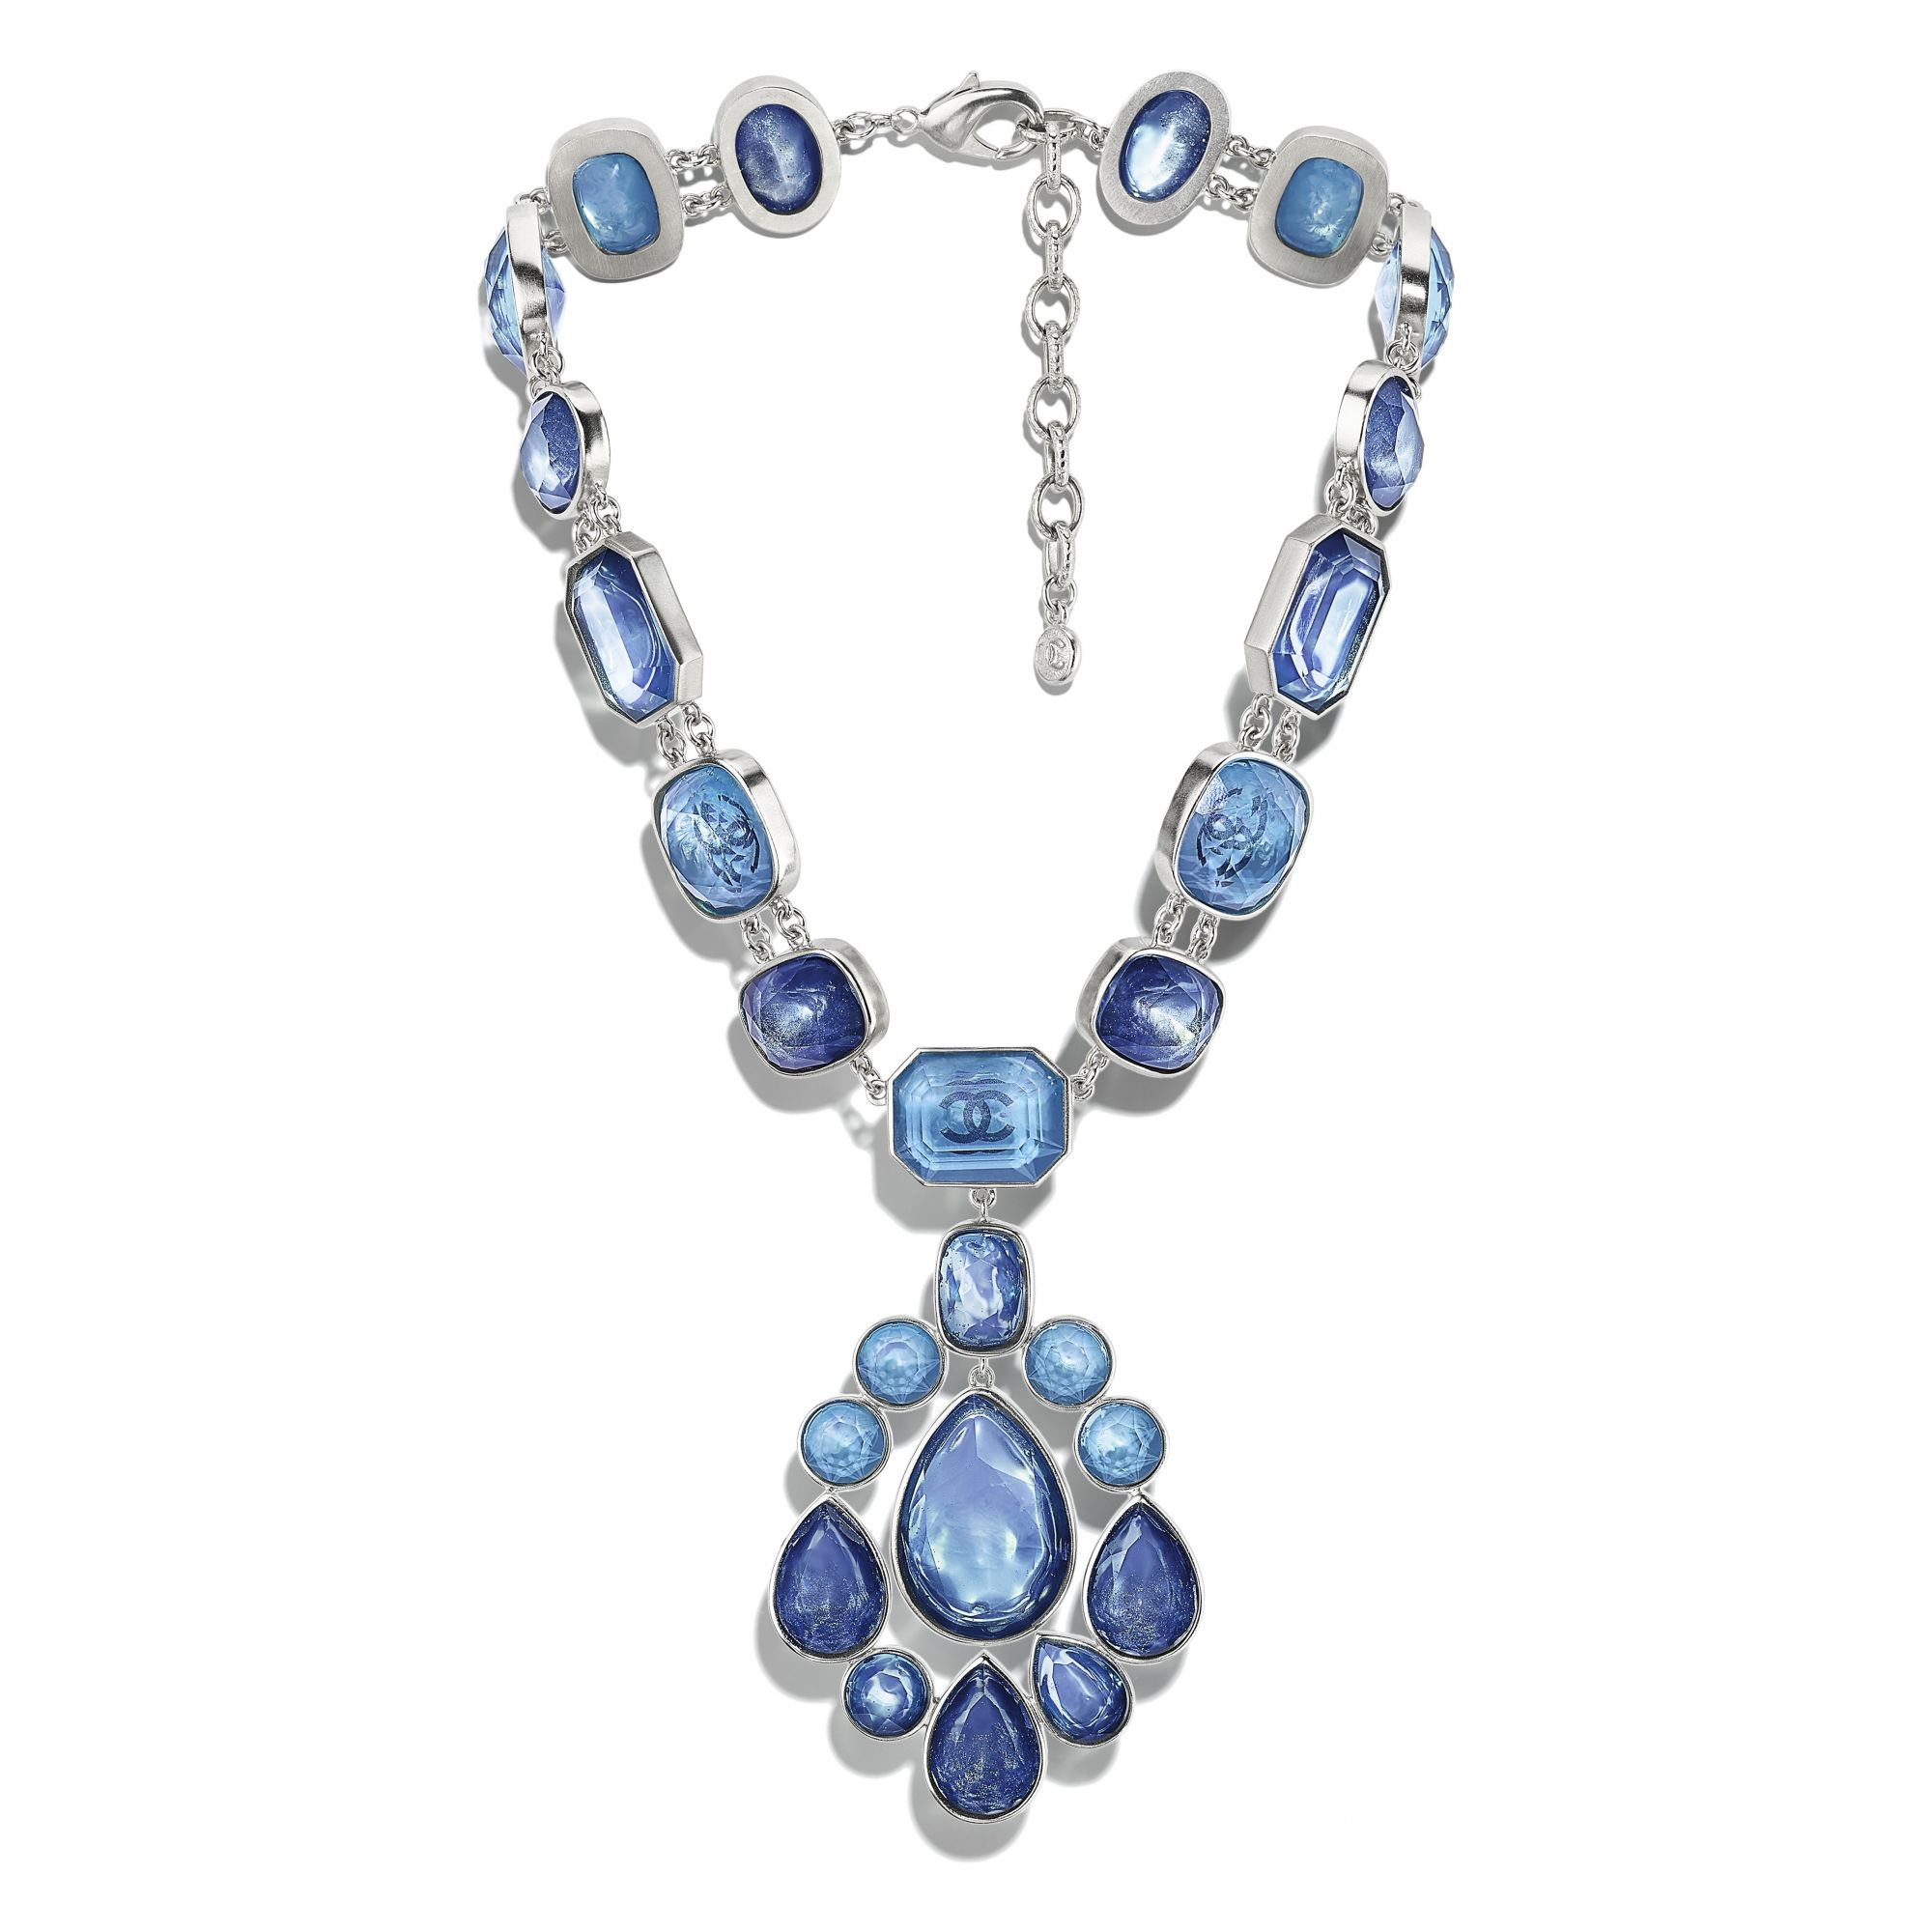 Necklace in metal, strass and blue resin with a pendant